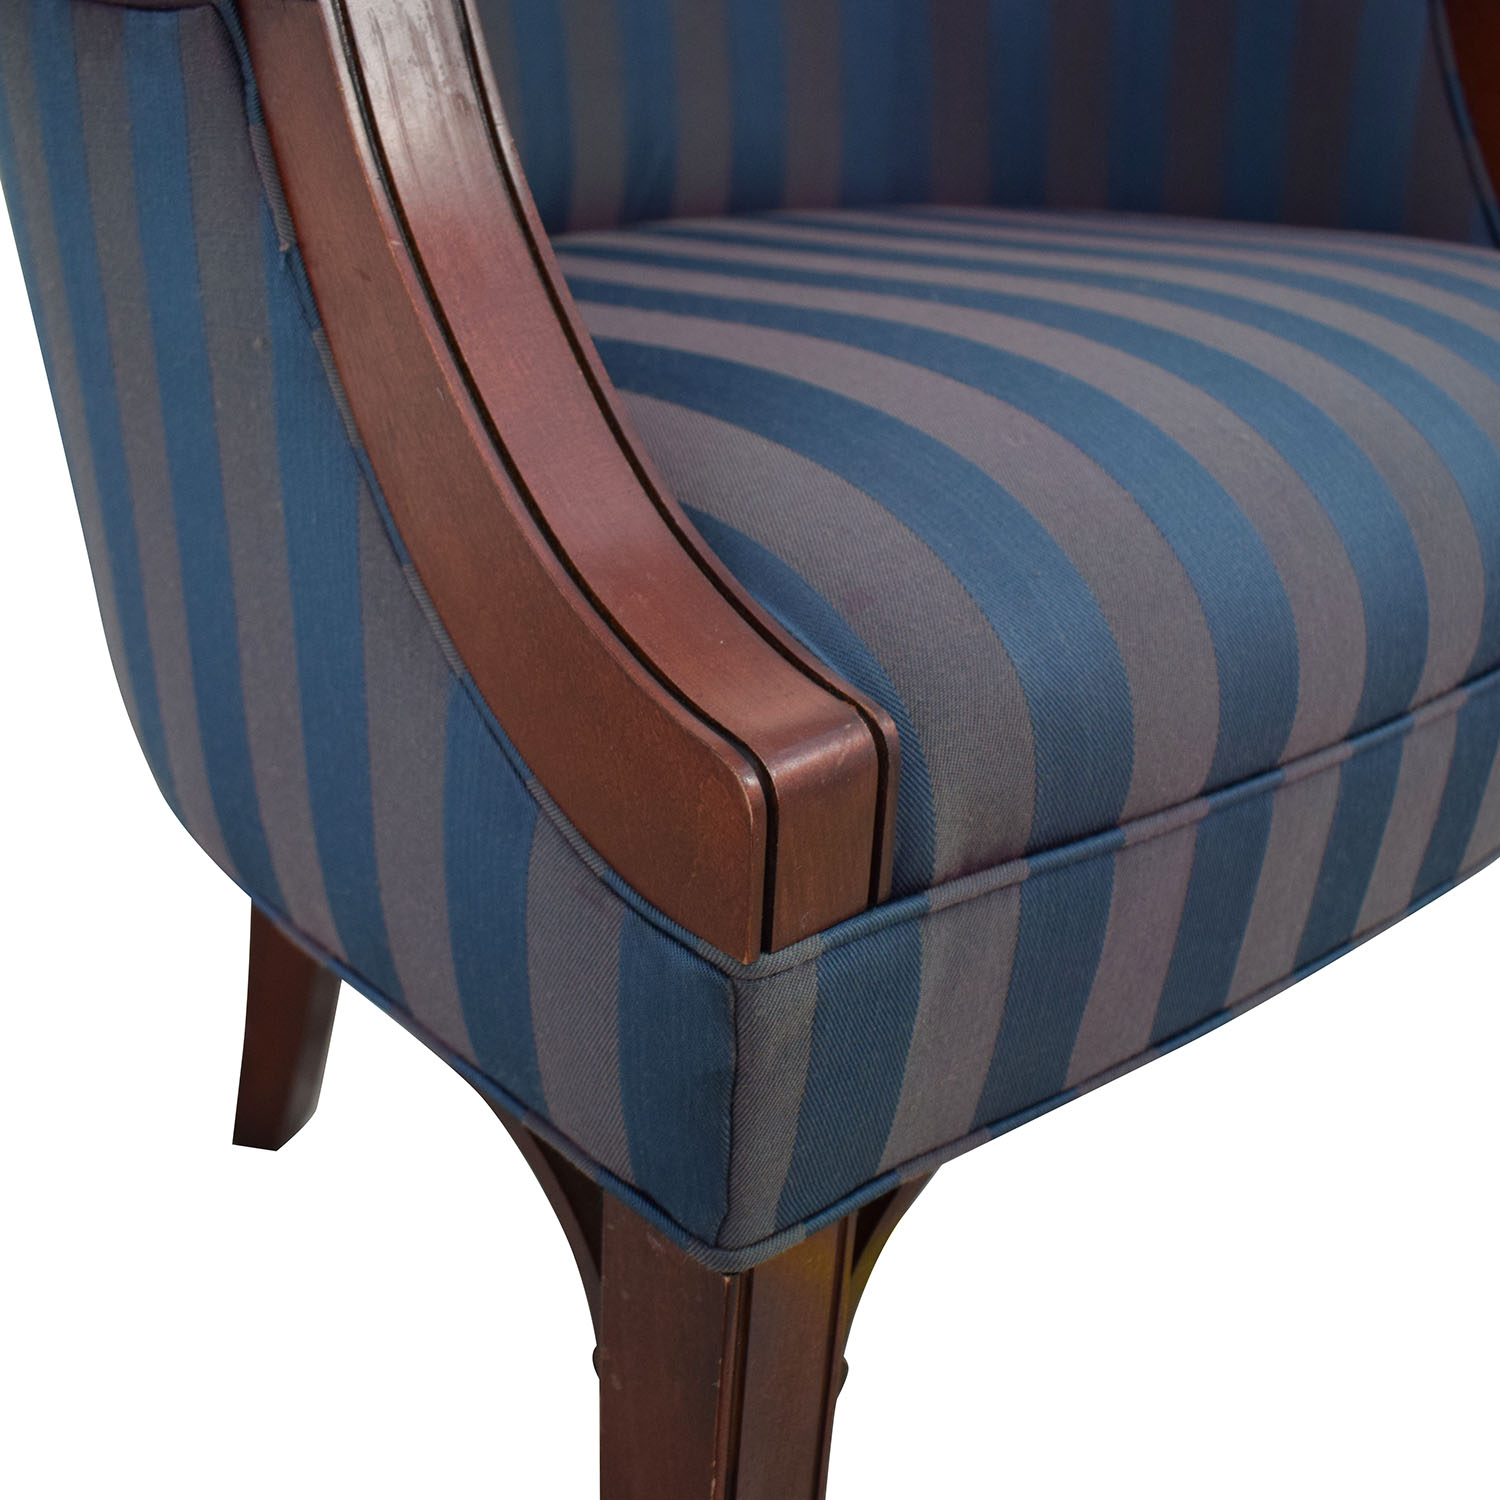 Kimball Kimball Independence Newcastle Chair coupon